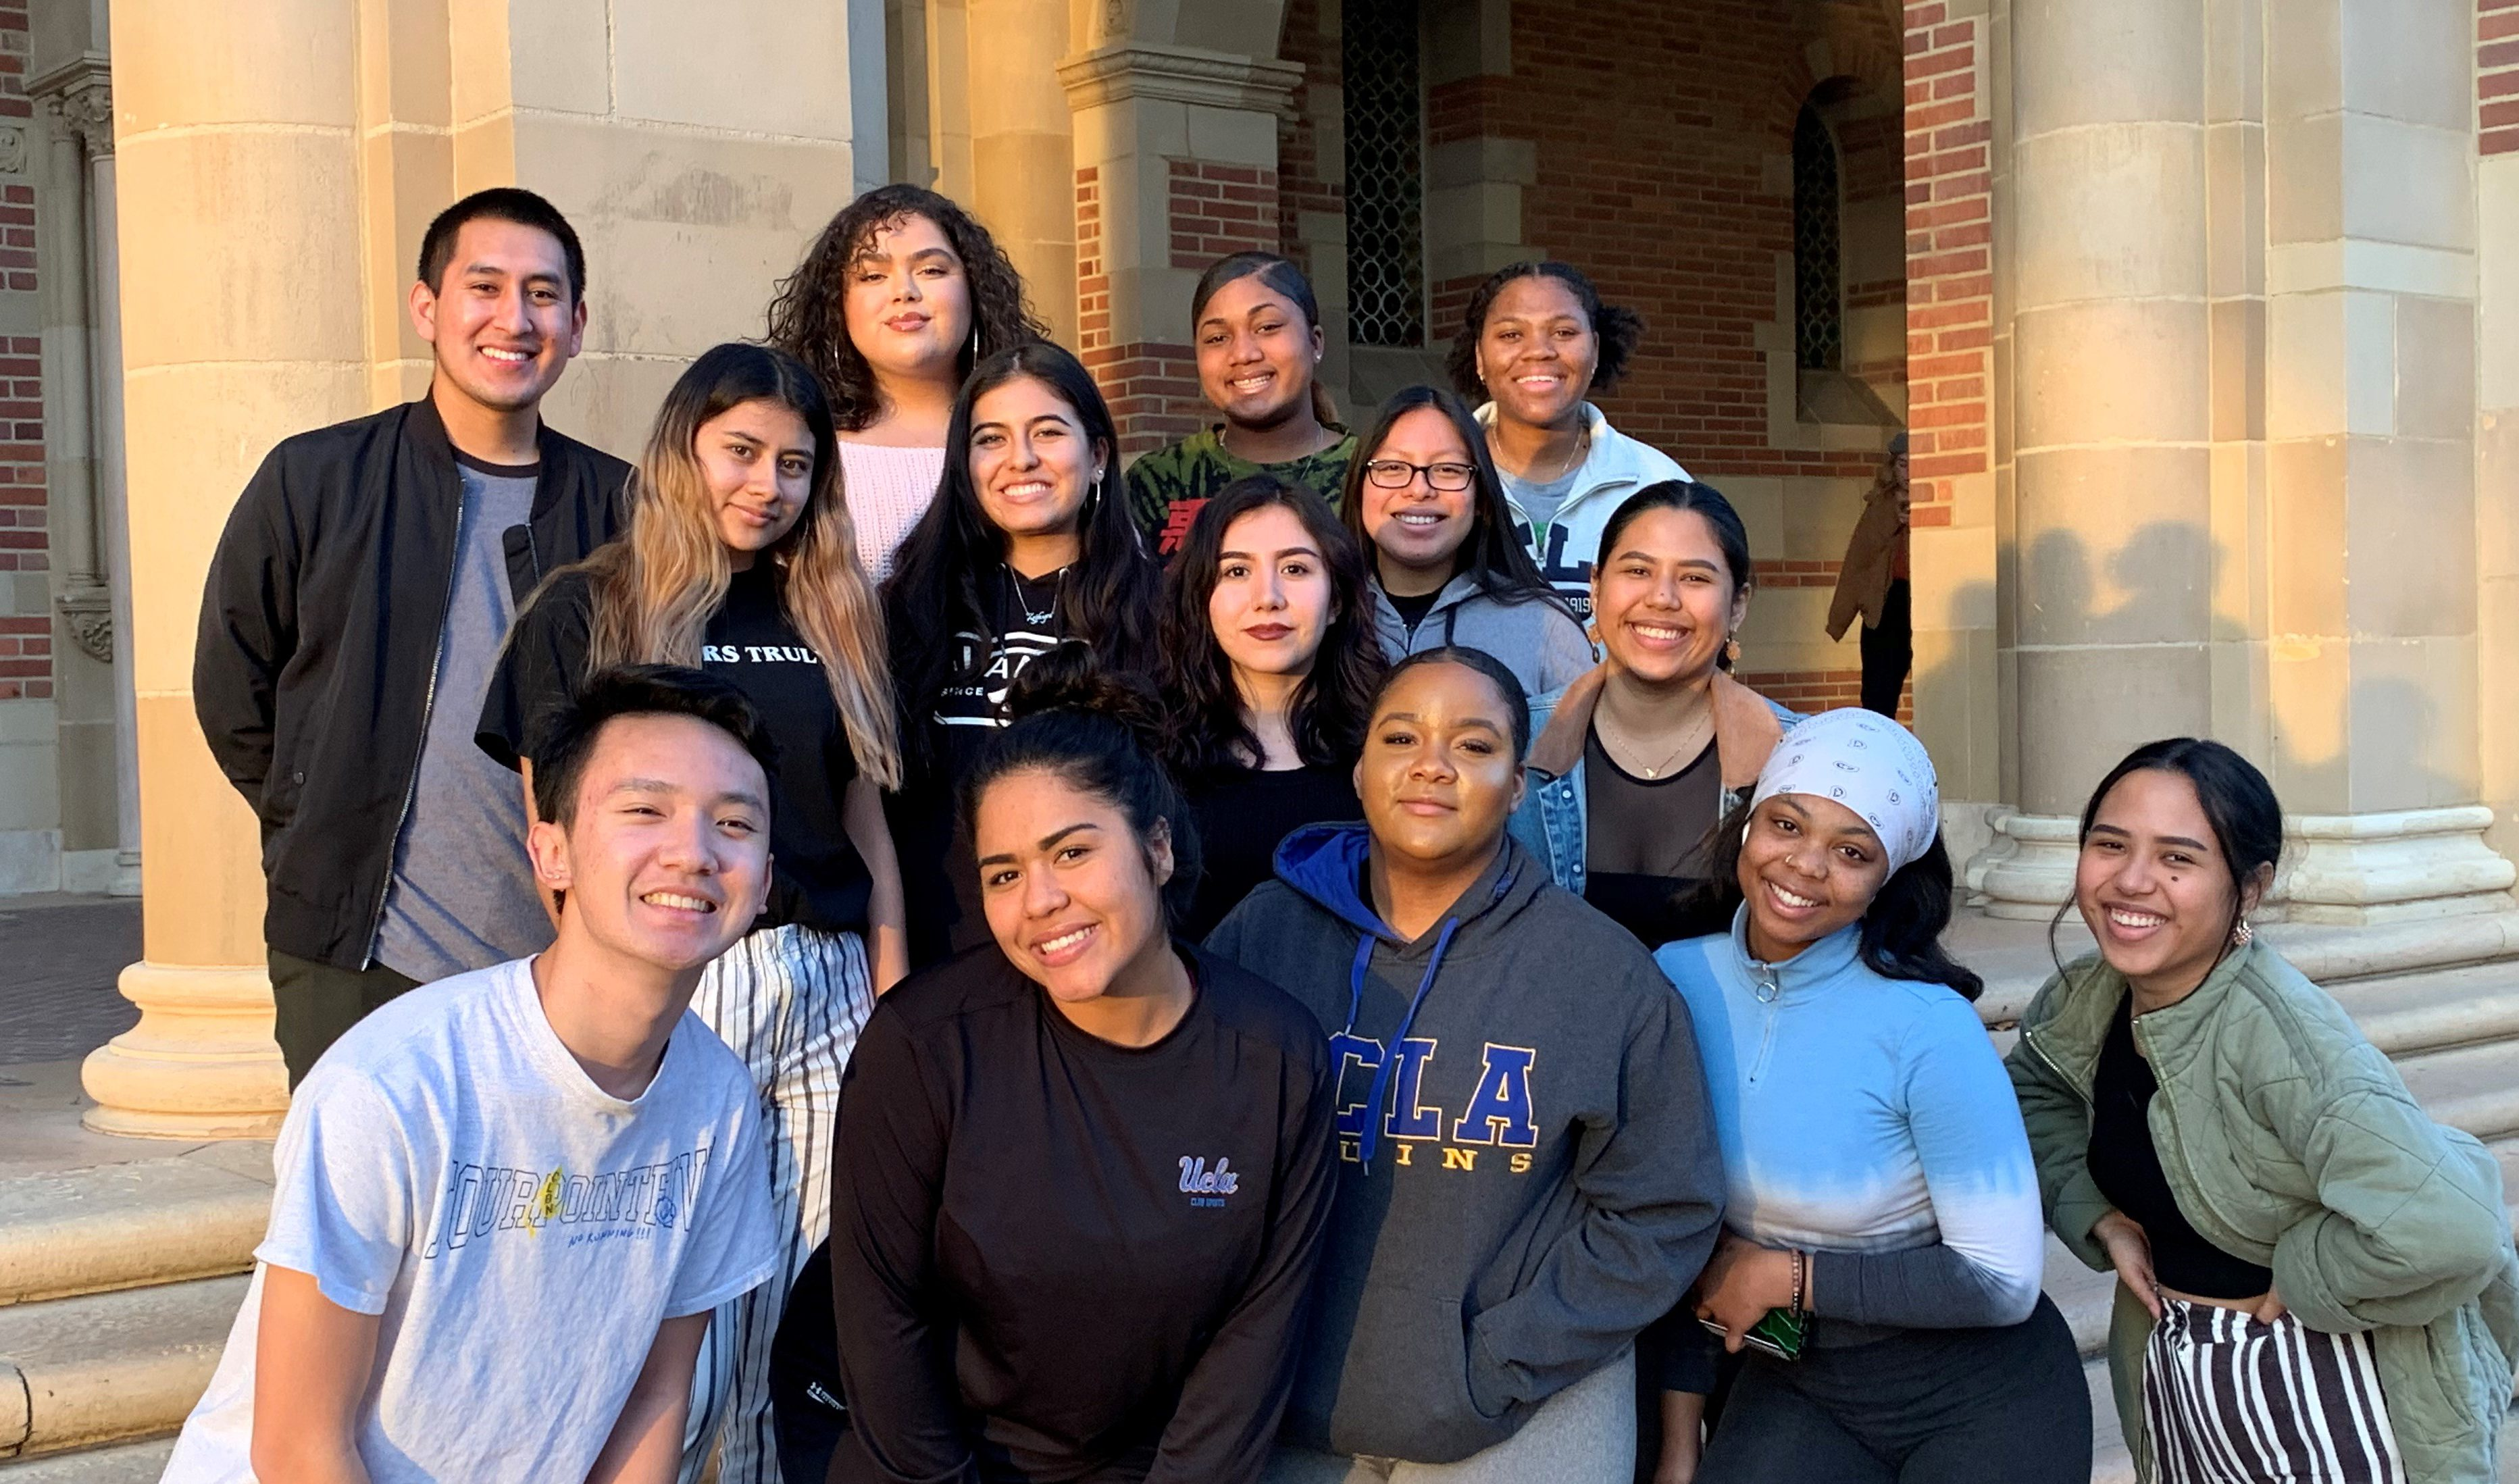 An image of the previous 2019 - 2020 Research Rookies Cohort smiling outside.